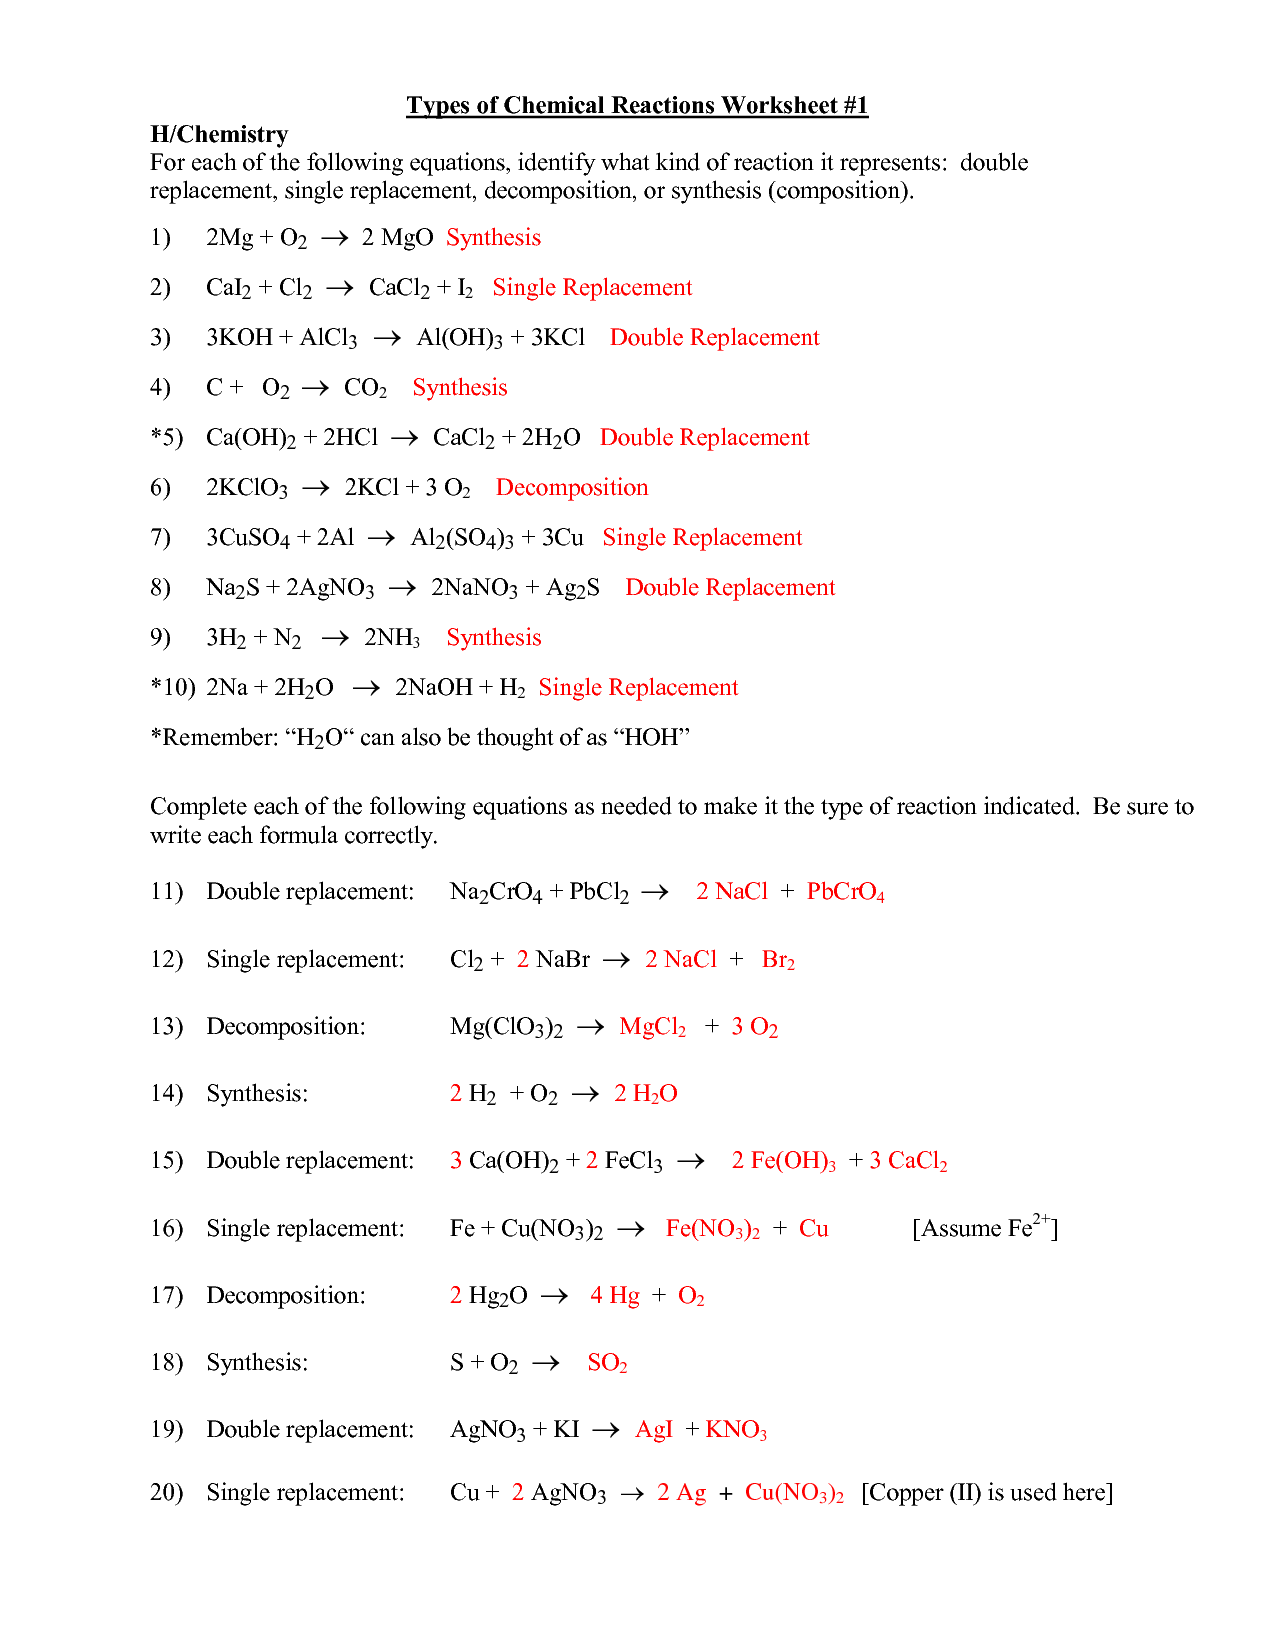 Types Of Chemical Reactions Worksheet Answers Com Free